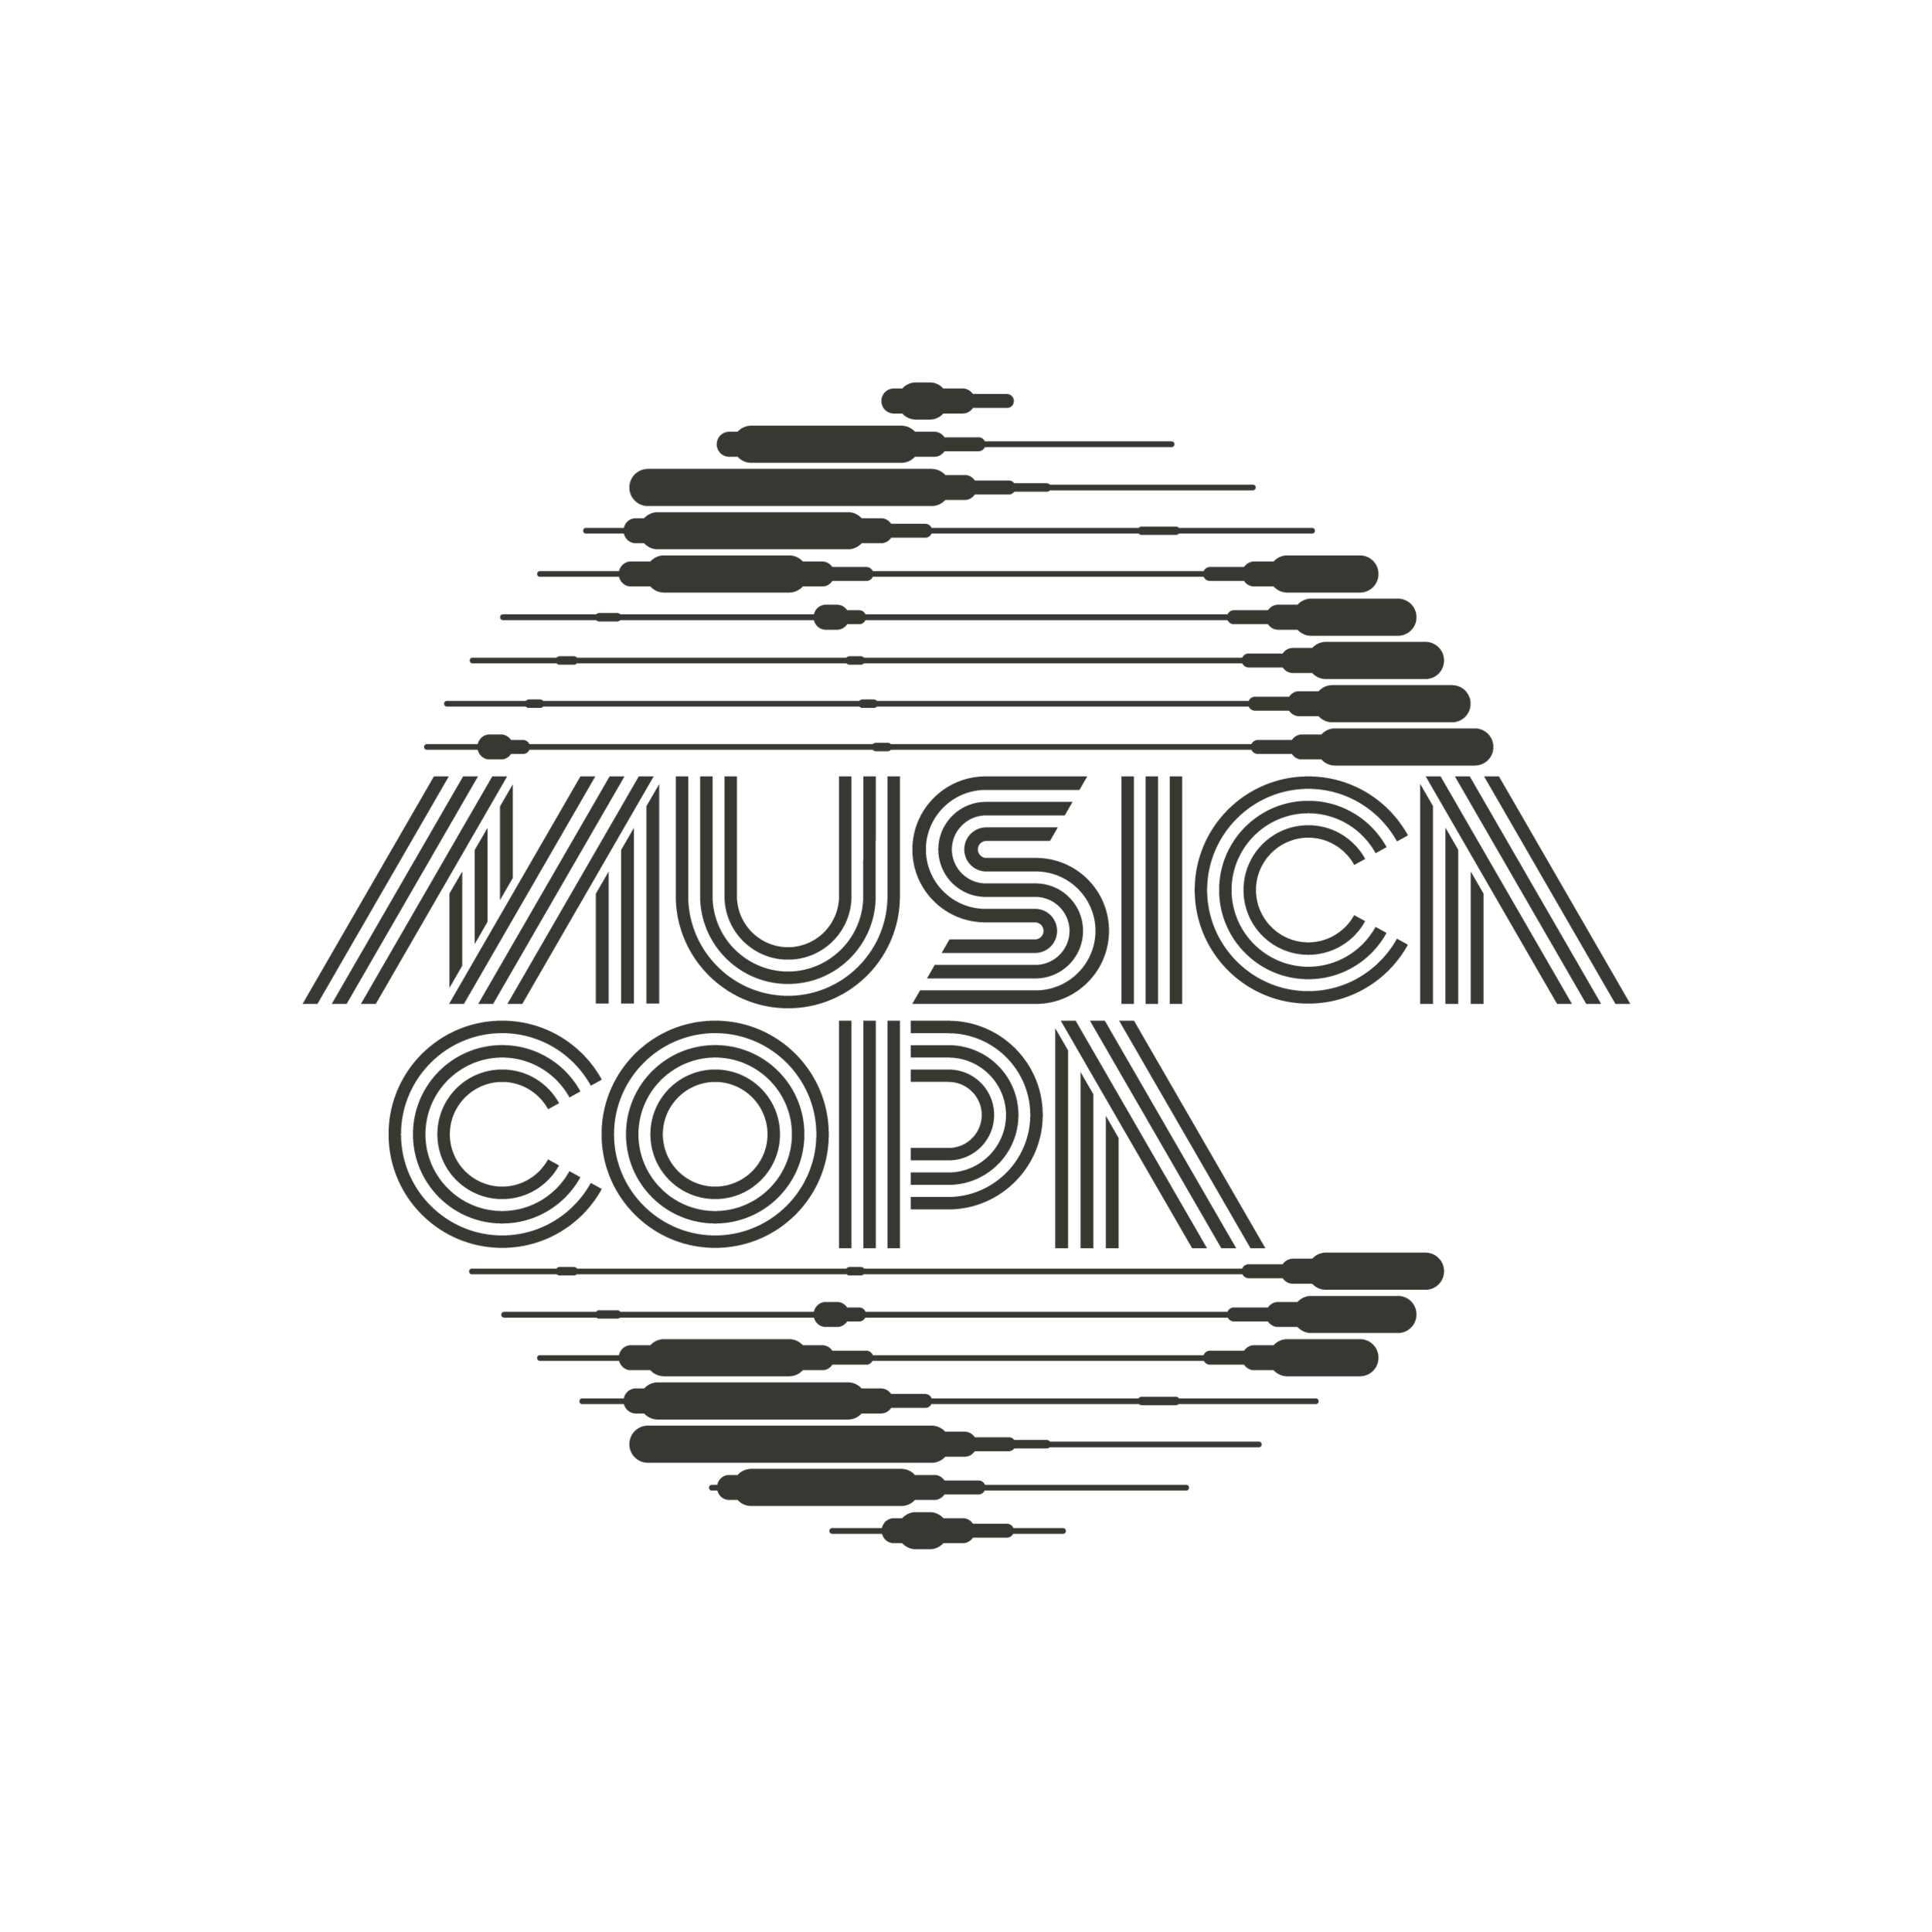 MusicaCopa@2x.png